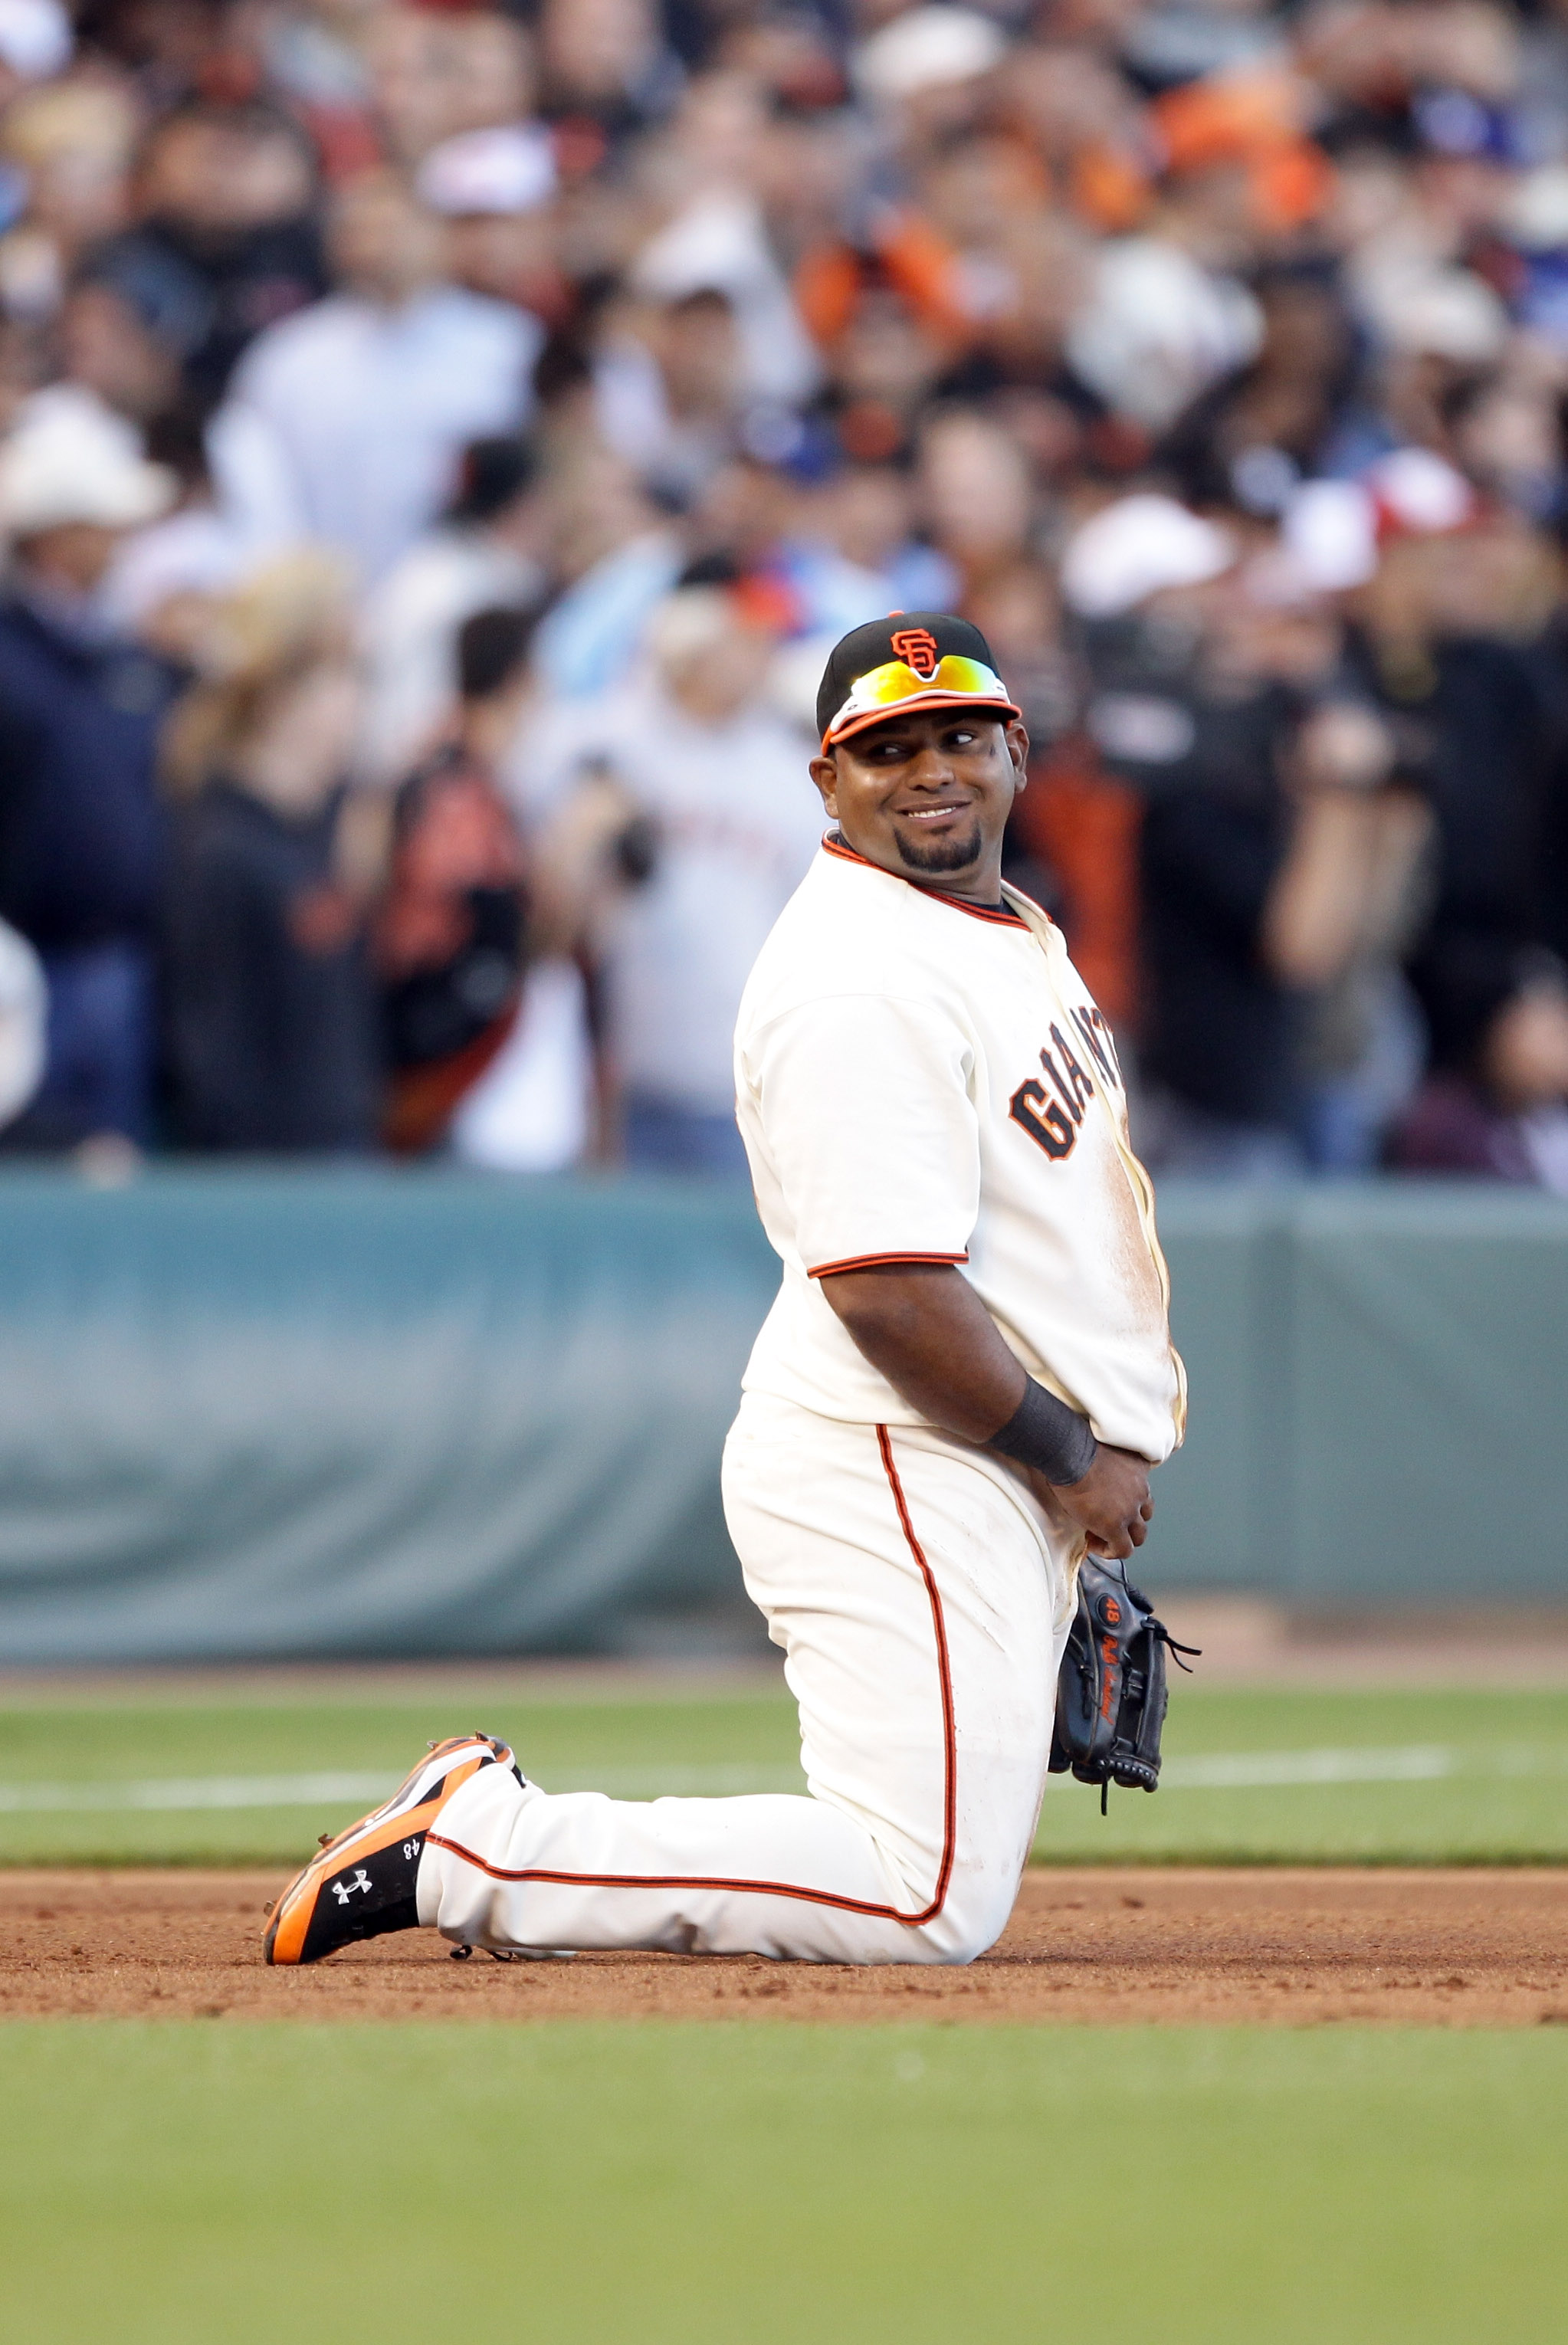 SAN FRANCISCO - AUGUST 01:  Pablo Sandoval #48 of the San Francisco Giants in action against the Los Angeles Dodgers at AT&T Park on August 1, 2010 in San Francisco, California.  (Photo by Ezra Shaw/Getty Images)